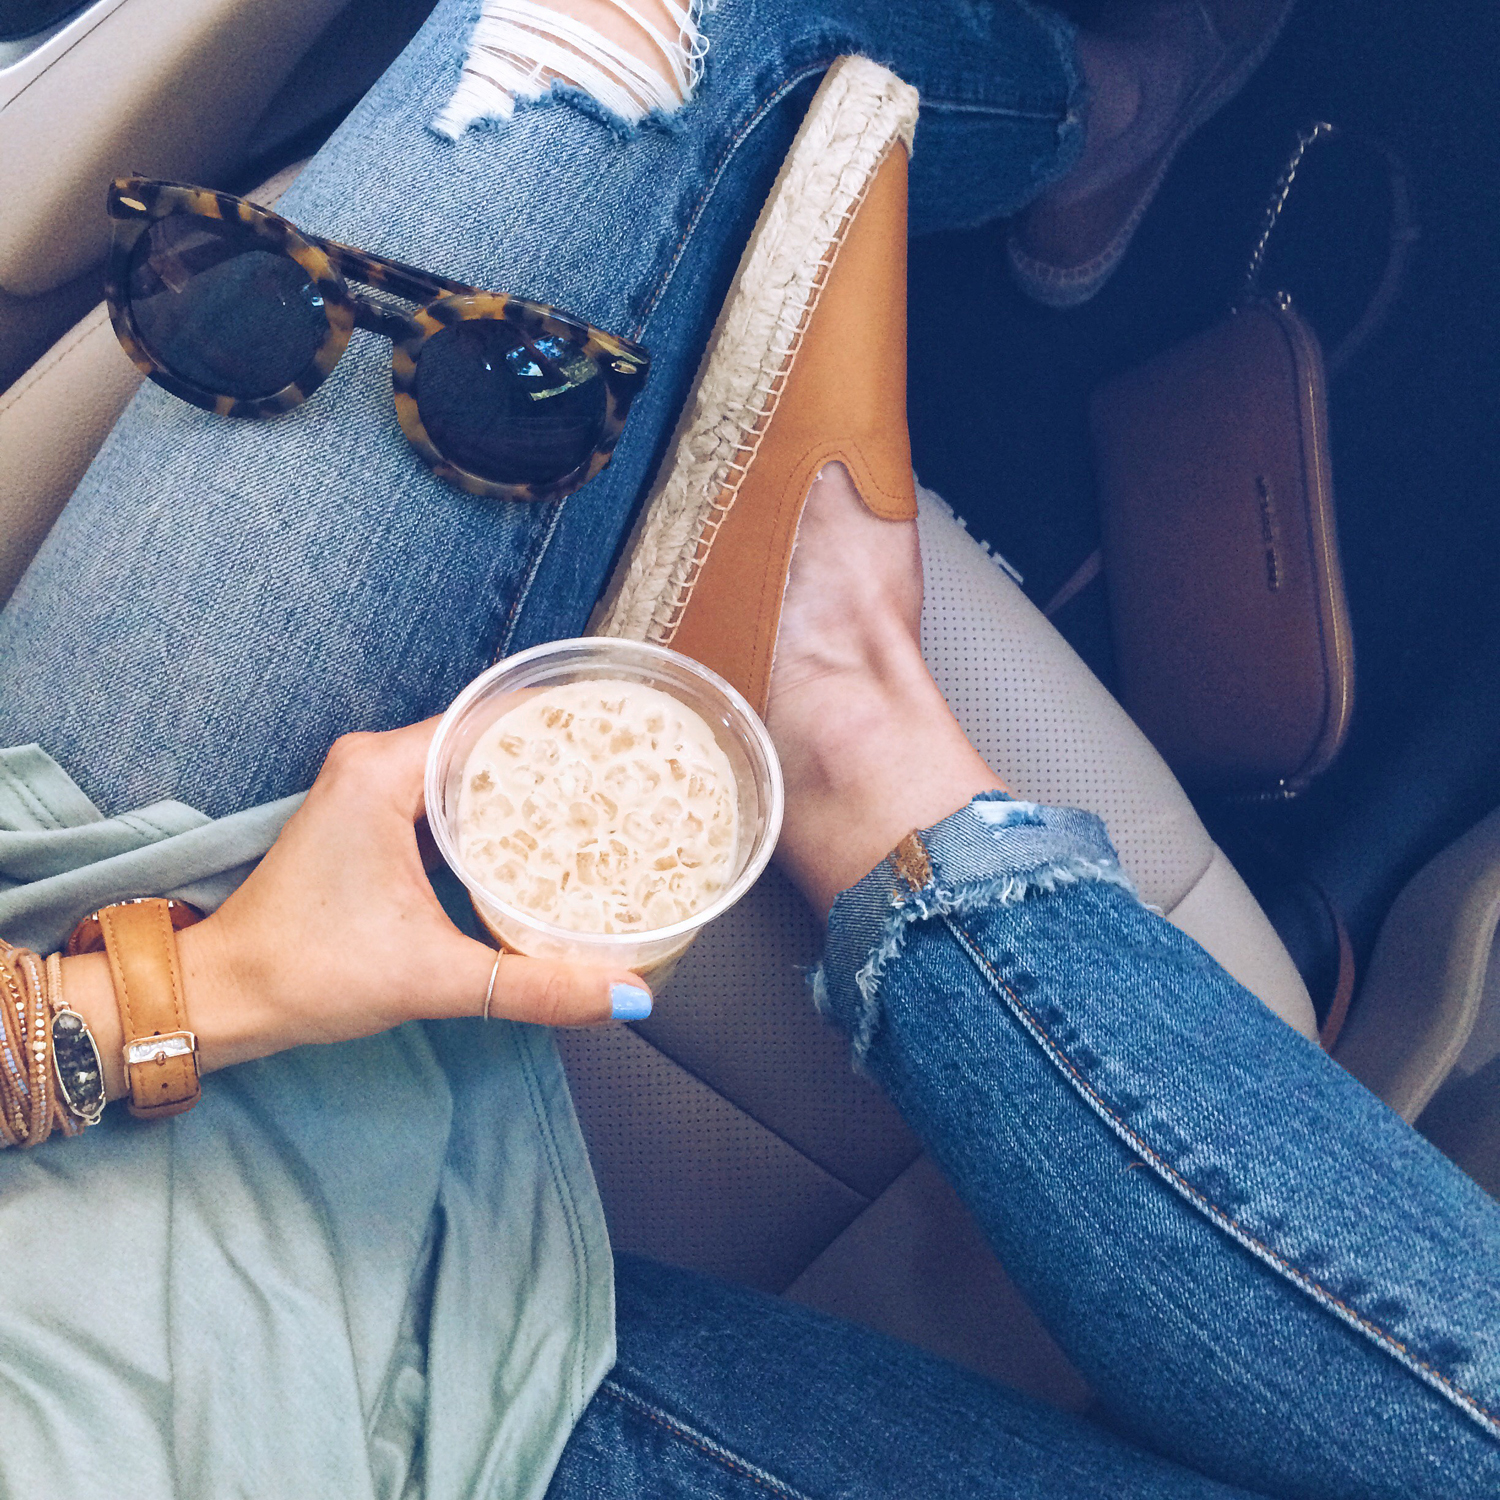 livvyland-blog-olivia-watson-austin-texas-fashion-blogger-road-trip-soludos-karen-walker-sunglasses-iced-latte-summer-nissan-rogue